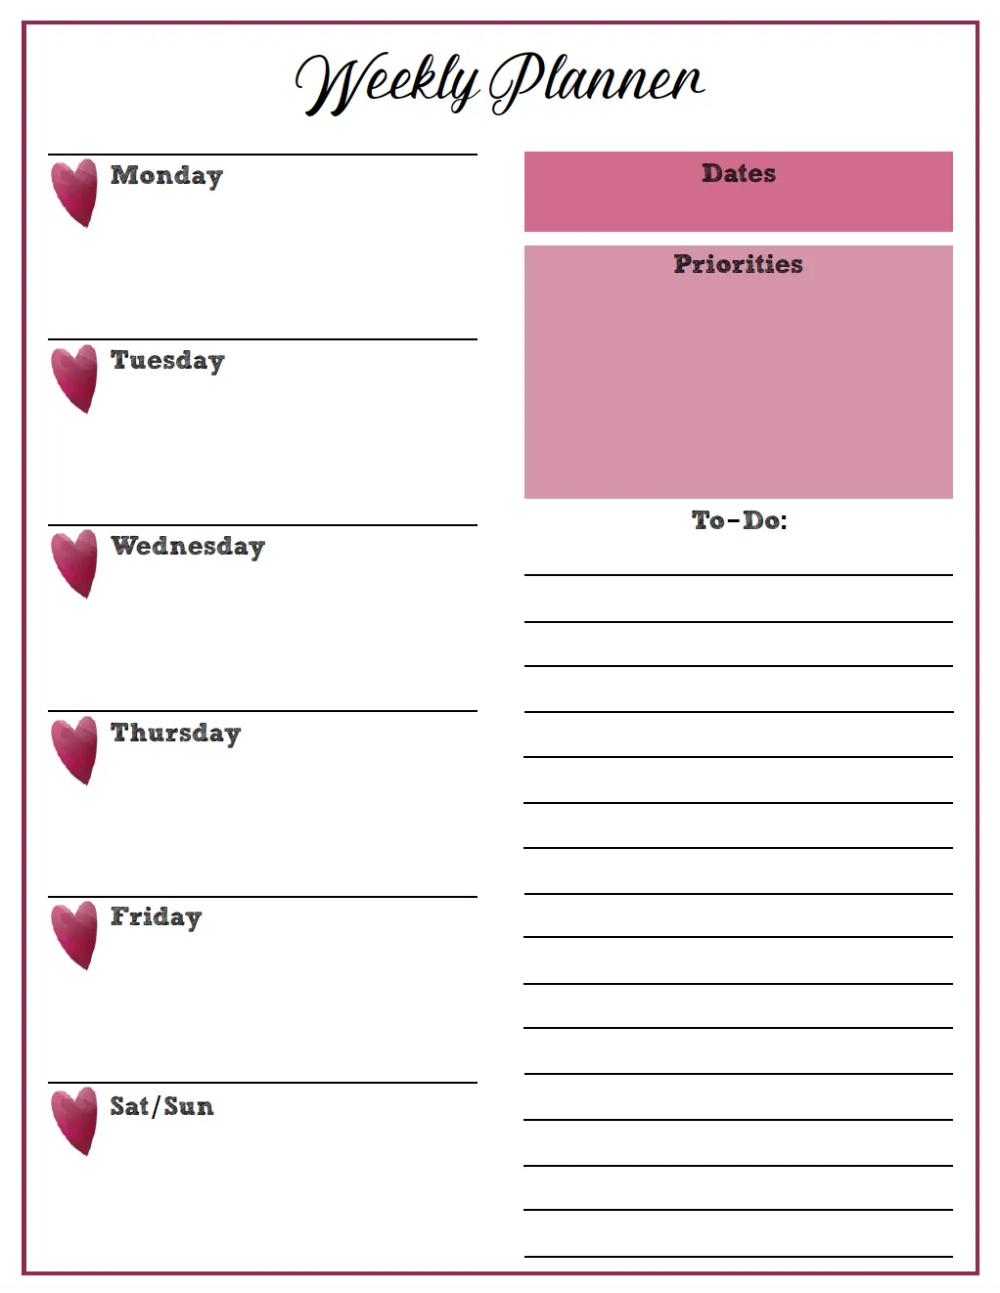 Free Printable Weekly Planners: Monday Start In 2020 throughout Weekly Planners That Start On Sunday